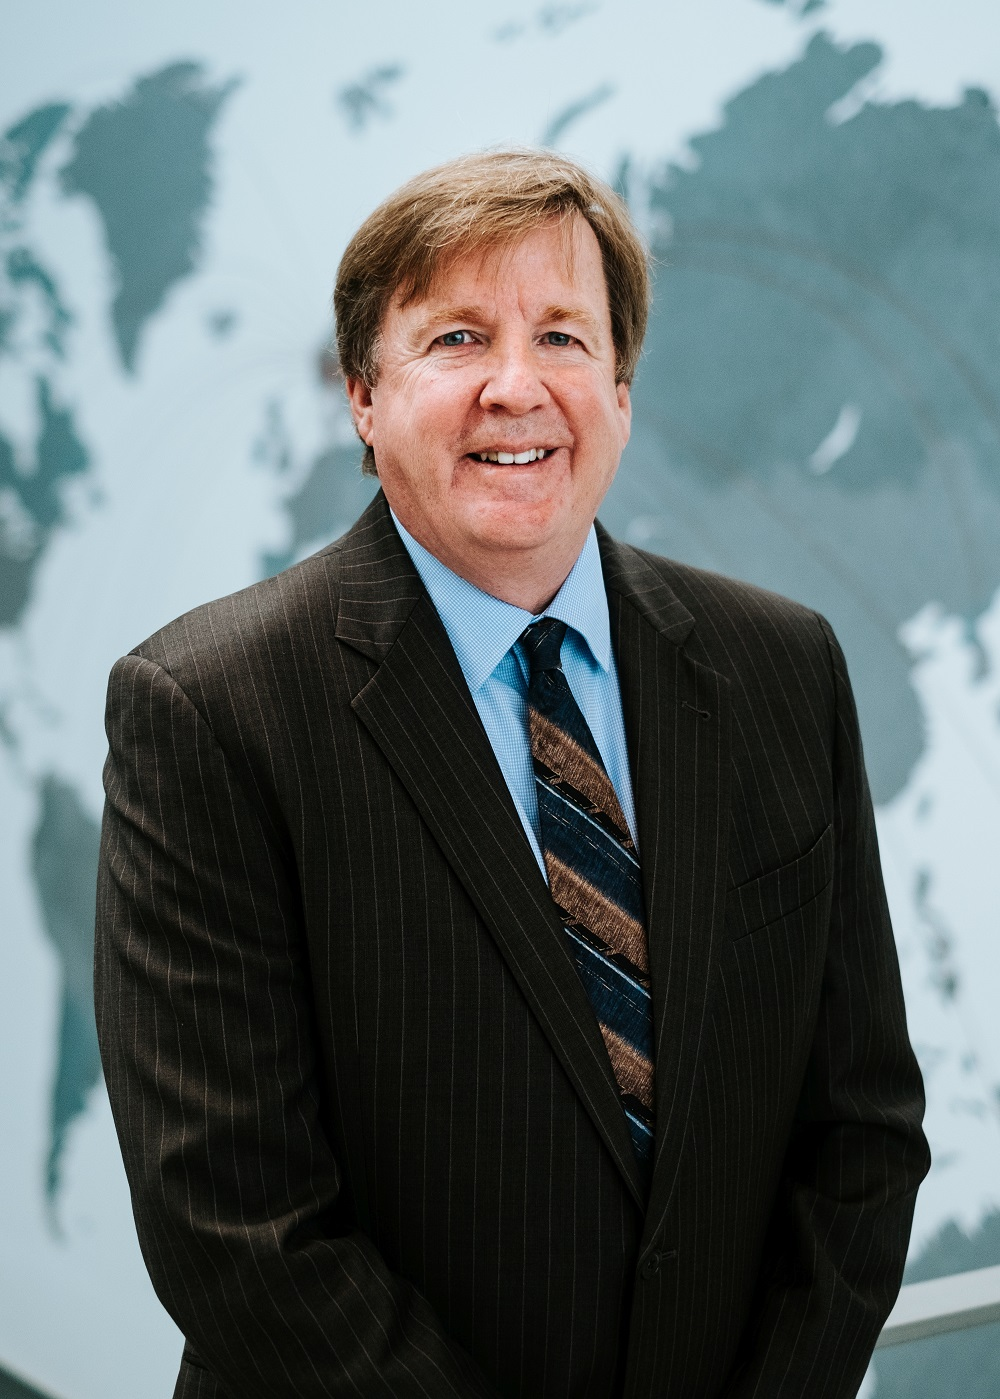 Stan Swearingen CEO - 2020 banking security: RBI readers give their expert forecasts